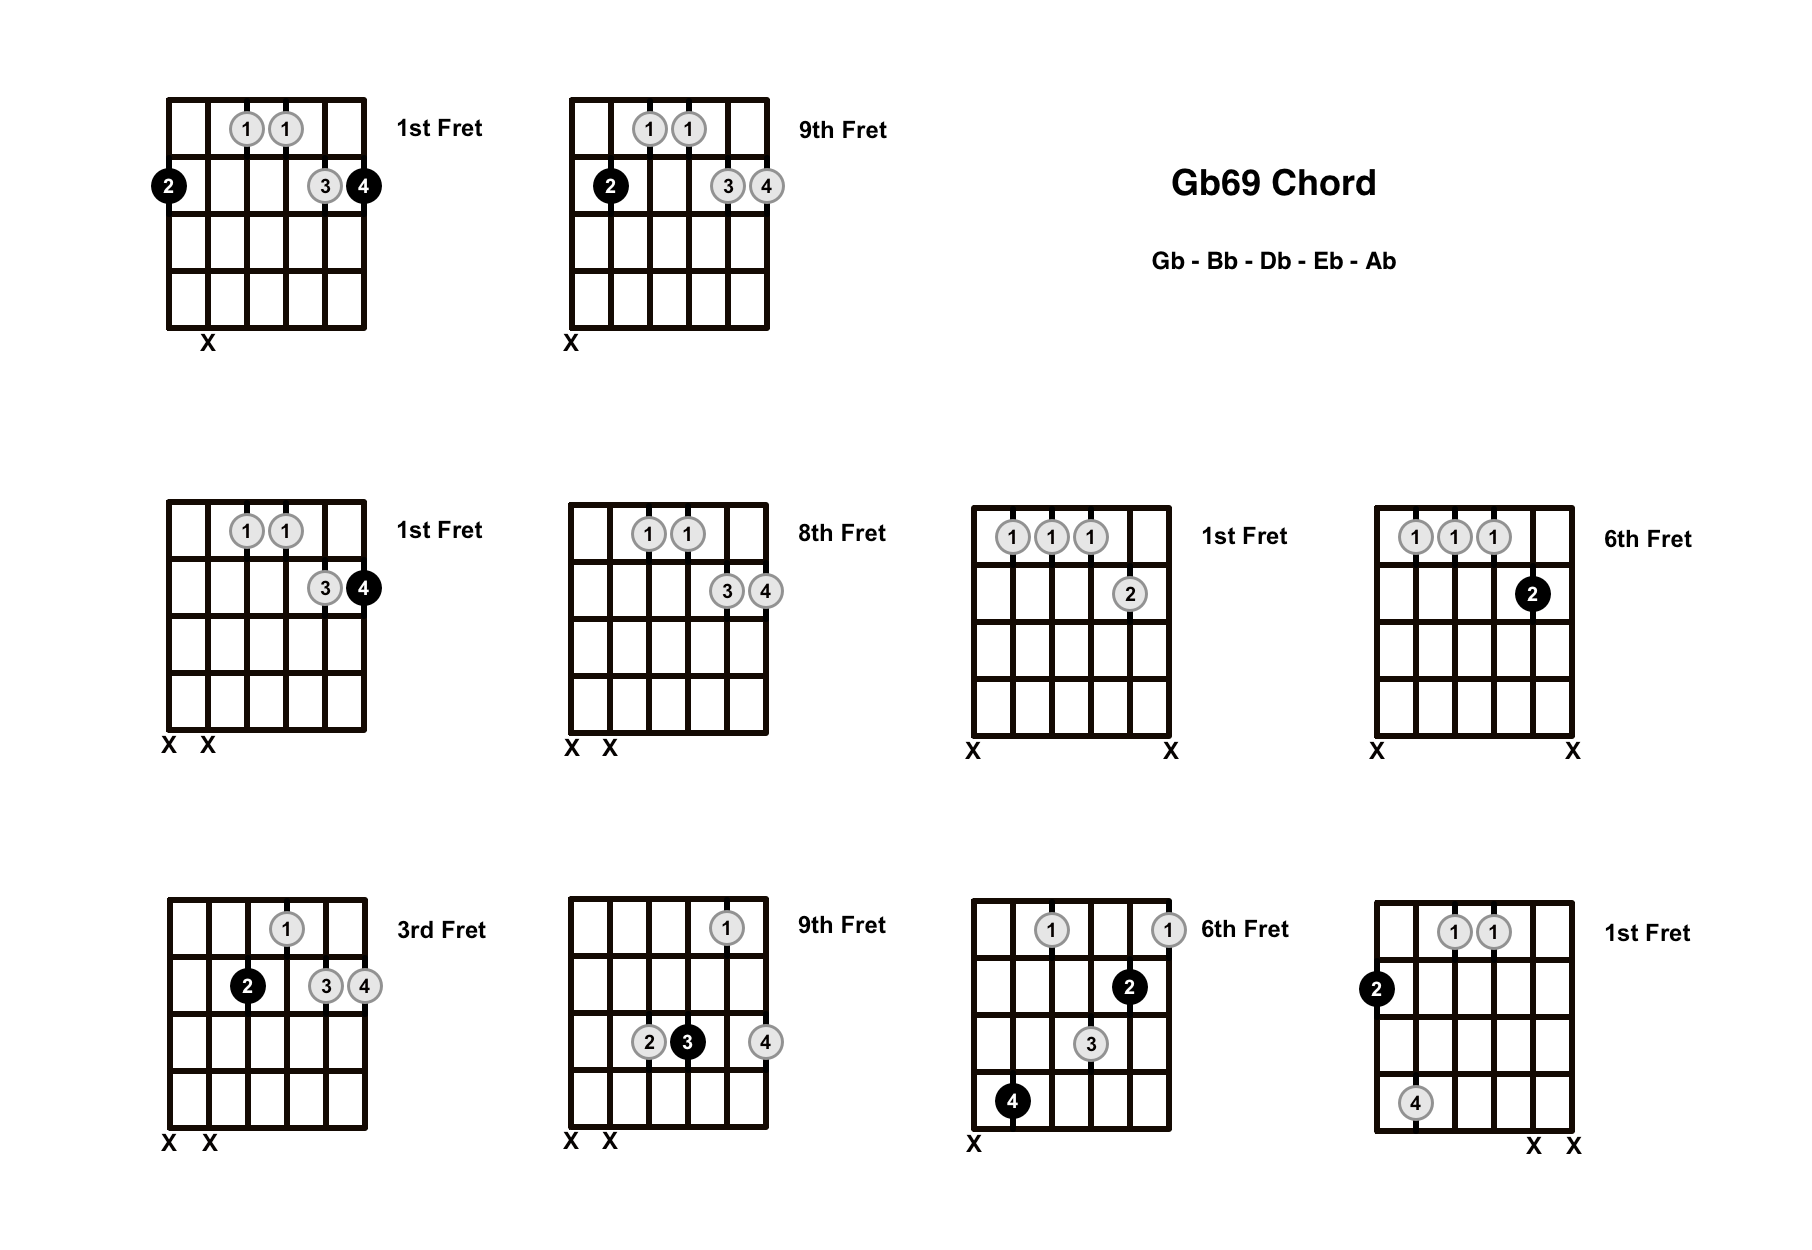 Gb69 Chord On The Guitar (G Flat 69) – Diagrams, Finger Positions and Theory